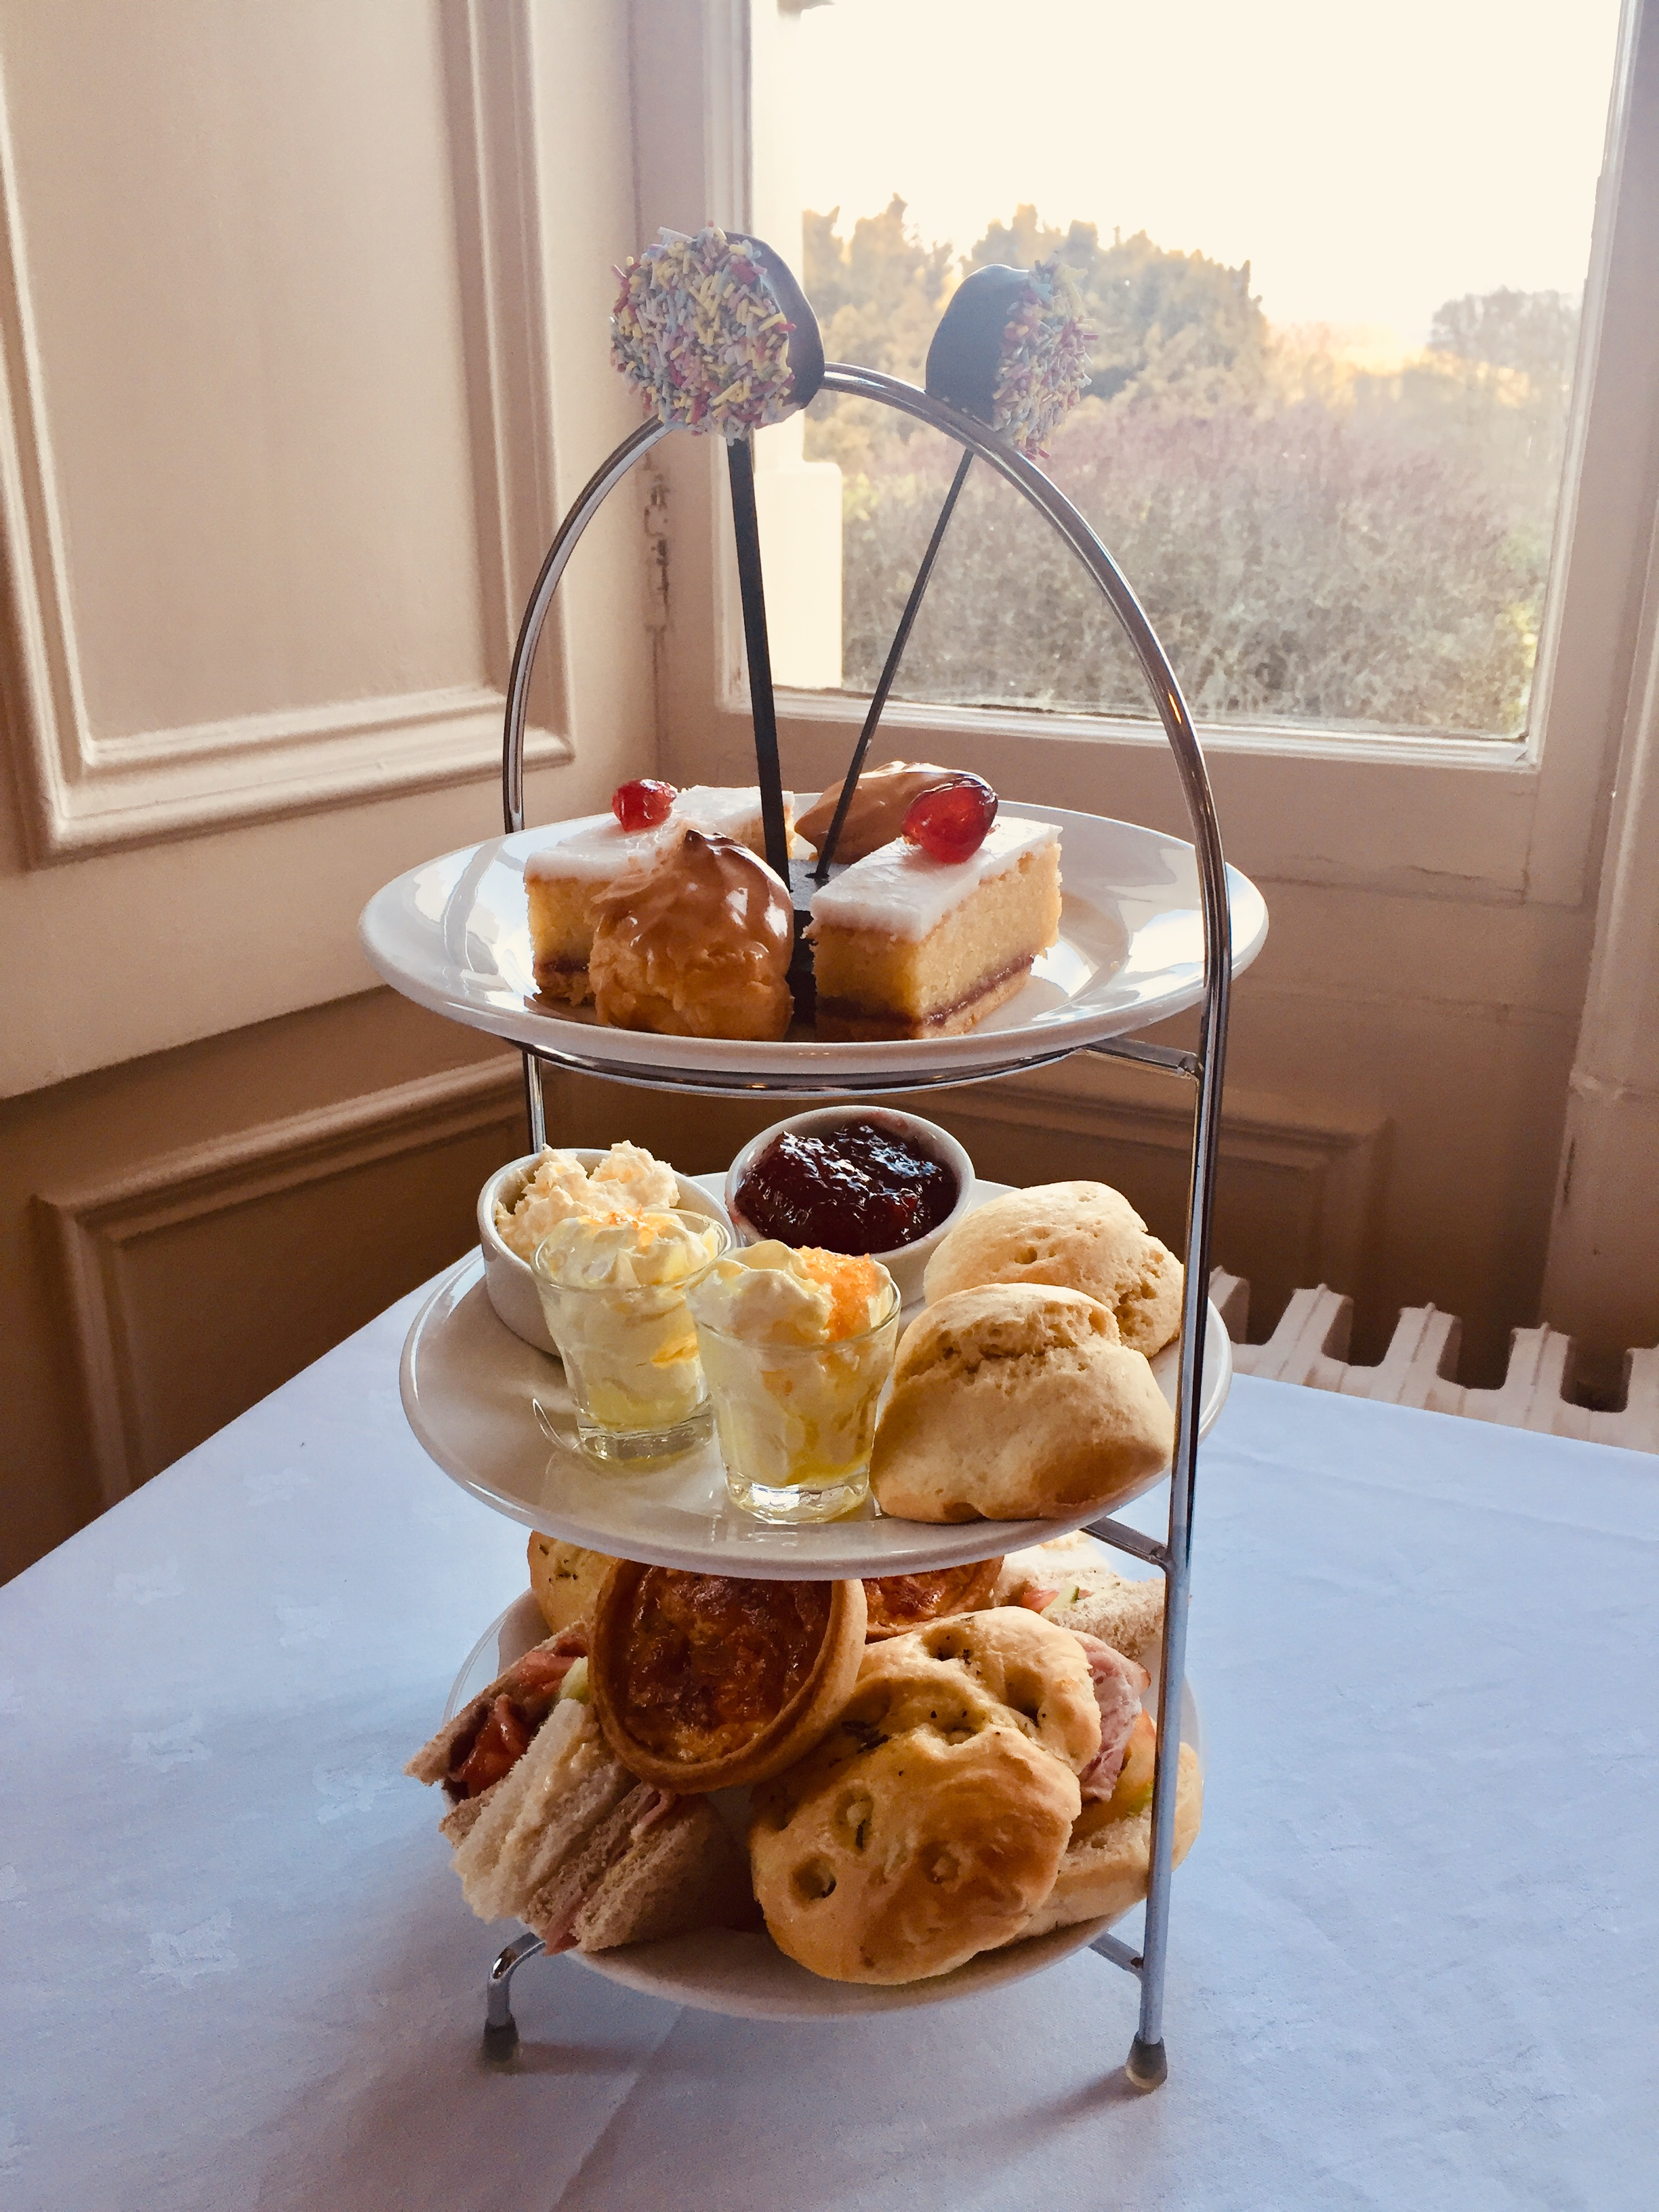 Falcondale afternoon tea